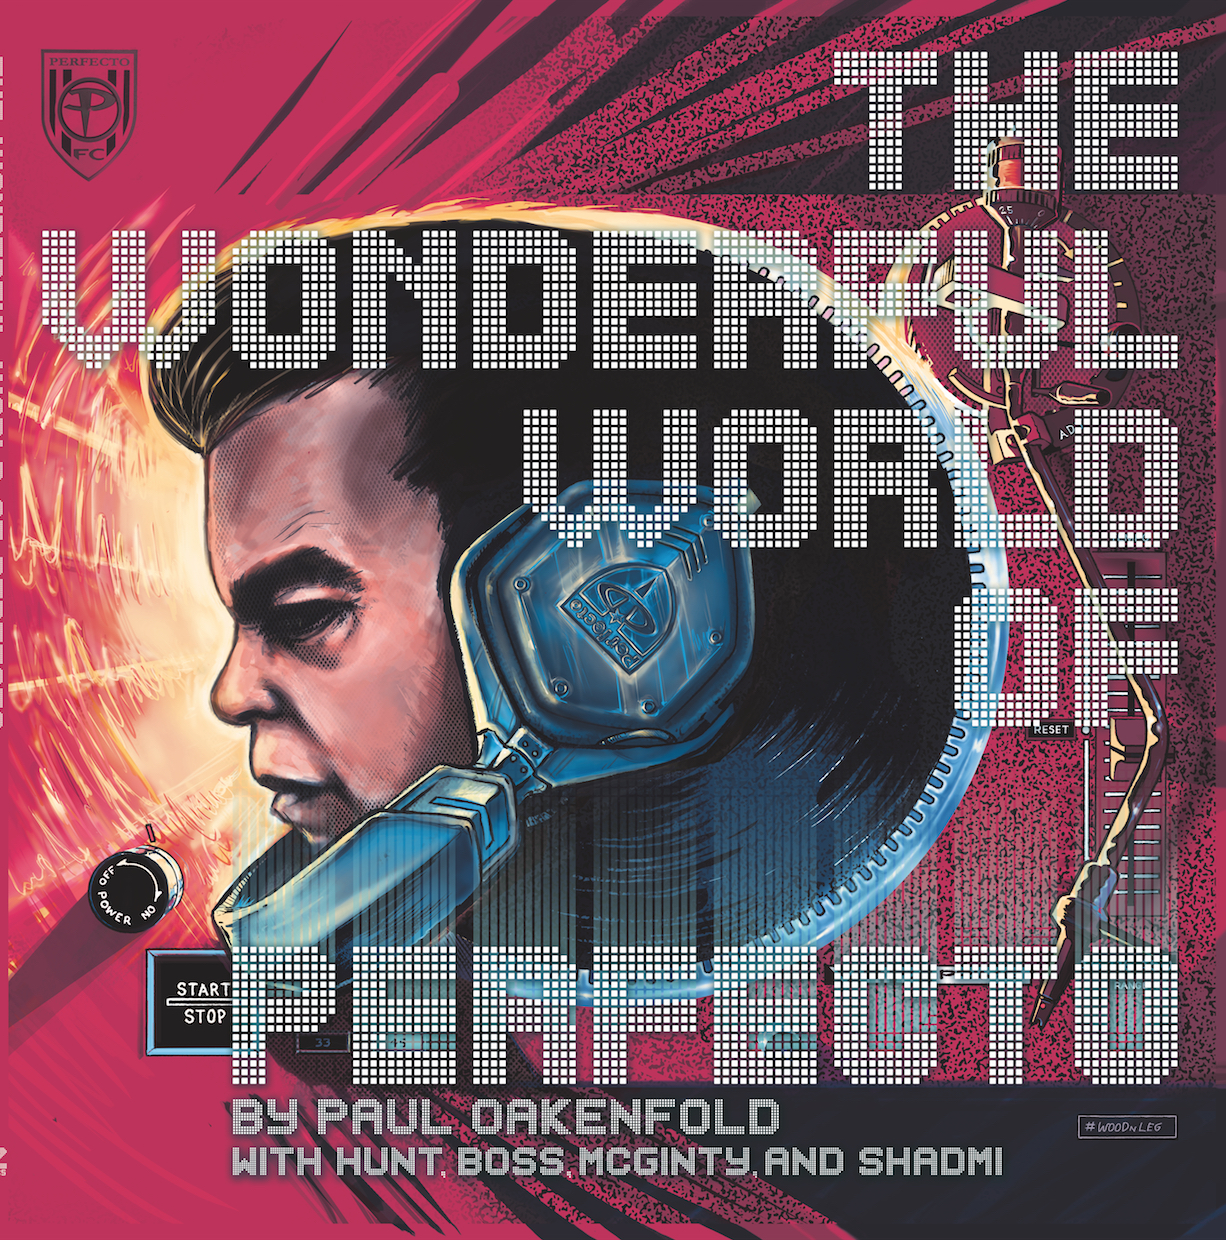 The Wonderful World of Perfecto: By Paul Oakenfold and Various   Description; Paul Oakenfold is the greatest DJ of all time, one of the progenitors of house music, platinum selling artist and composer of numerous soundtracks. Now comes the not quite true story about of his life told in graphic novel form. Starting at the genesis of his career in Ibiza, this book charts the windy road taken to fame, fortune and musical nirvana.   Featuring an original soundtrack mix By Paul Oakenfold.